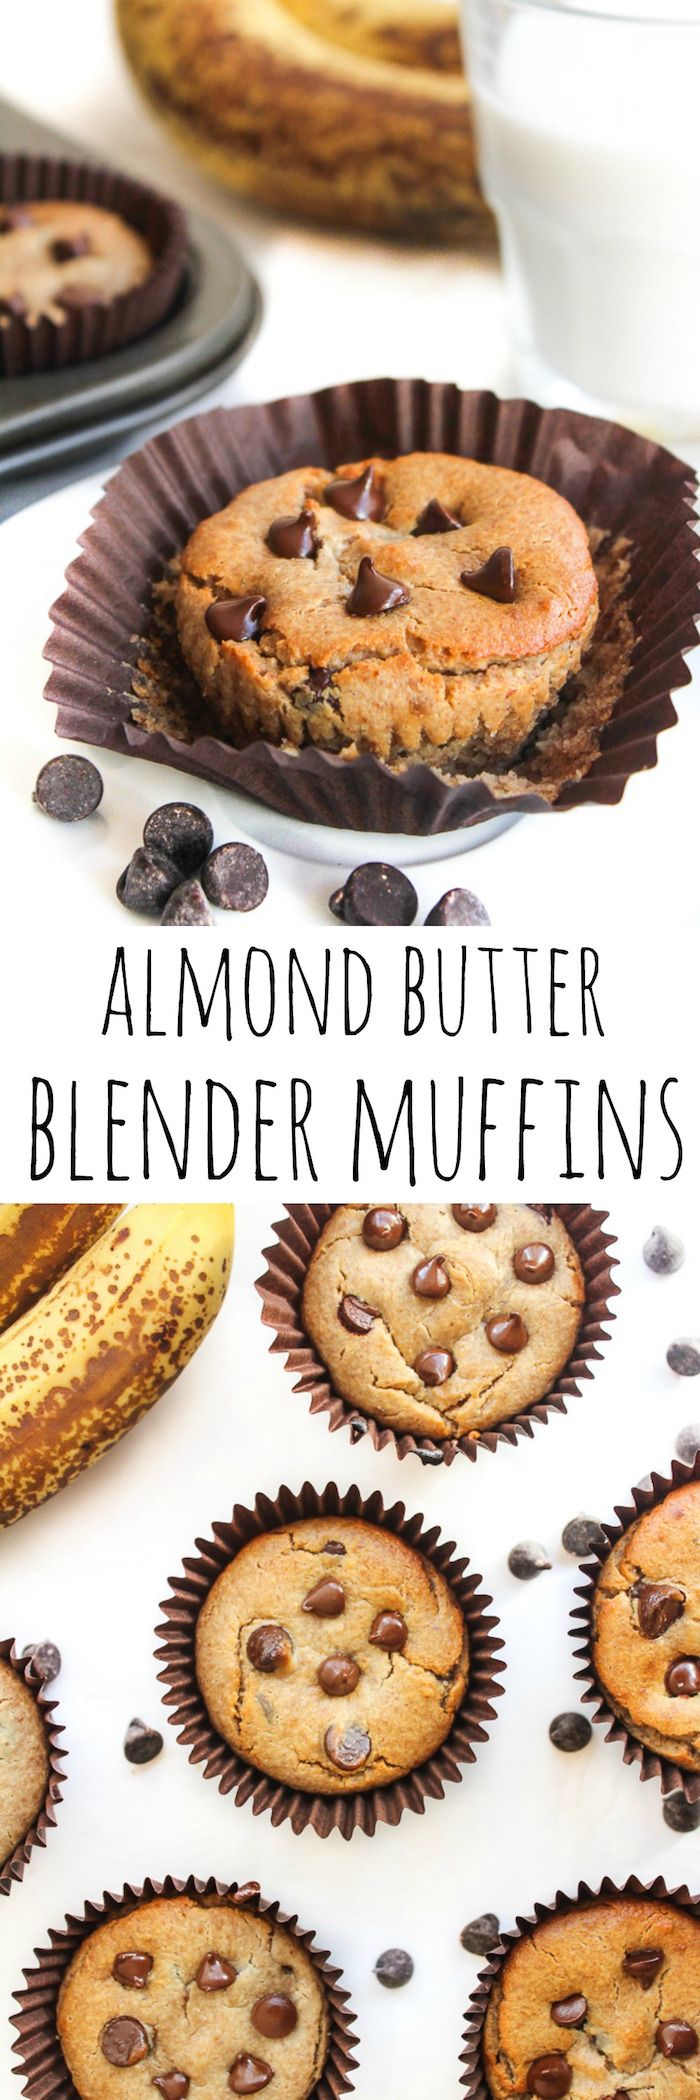 Almond Butter Blender Muffins - paleo and vegan too!